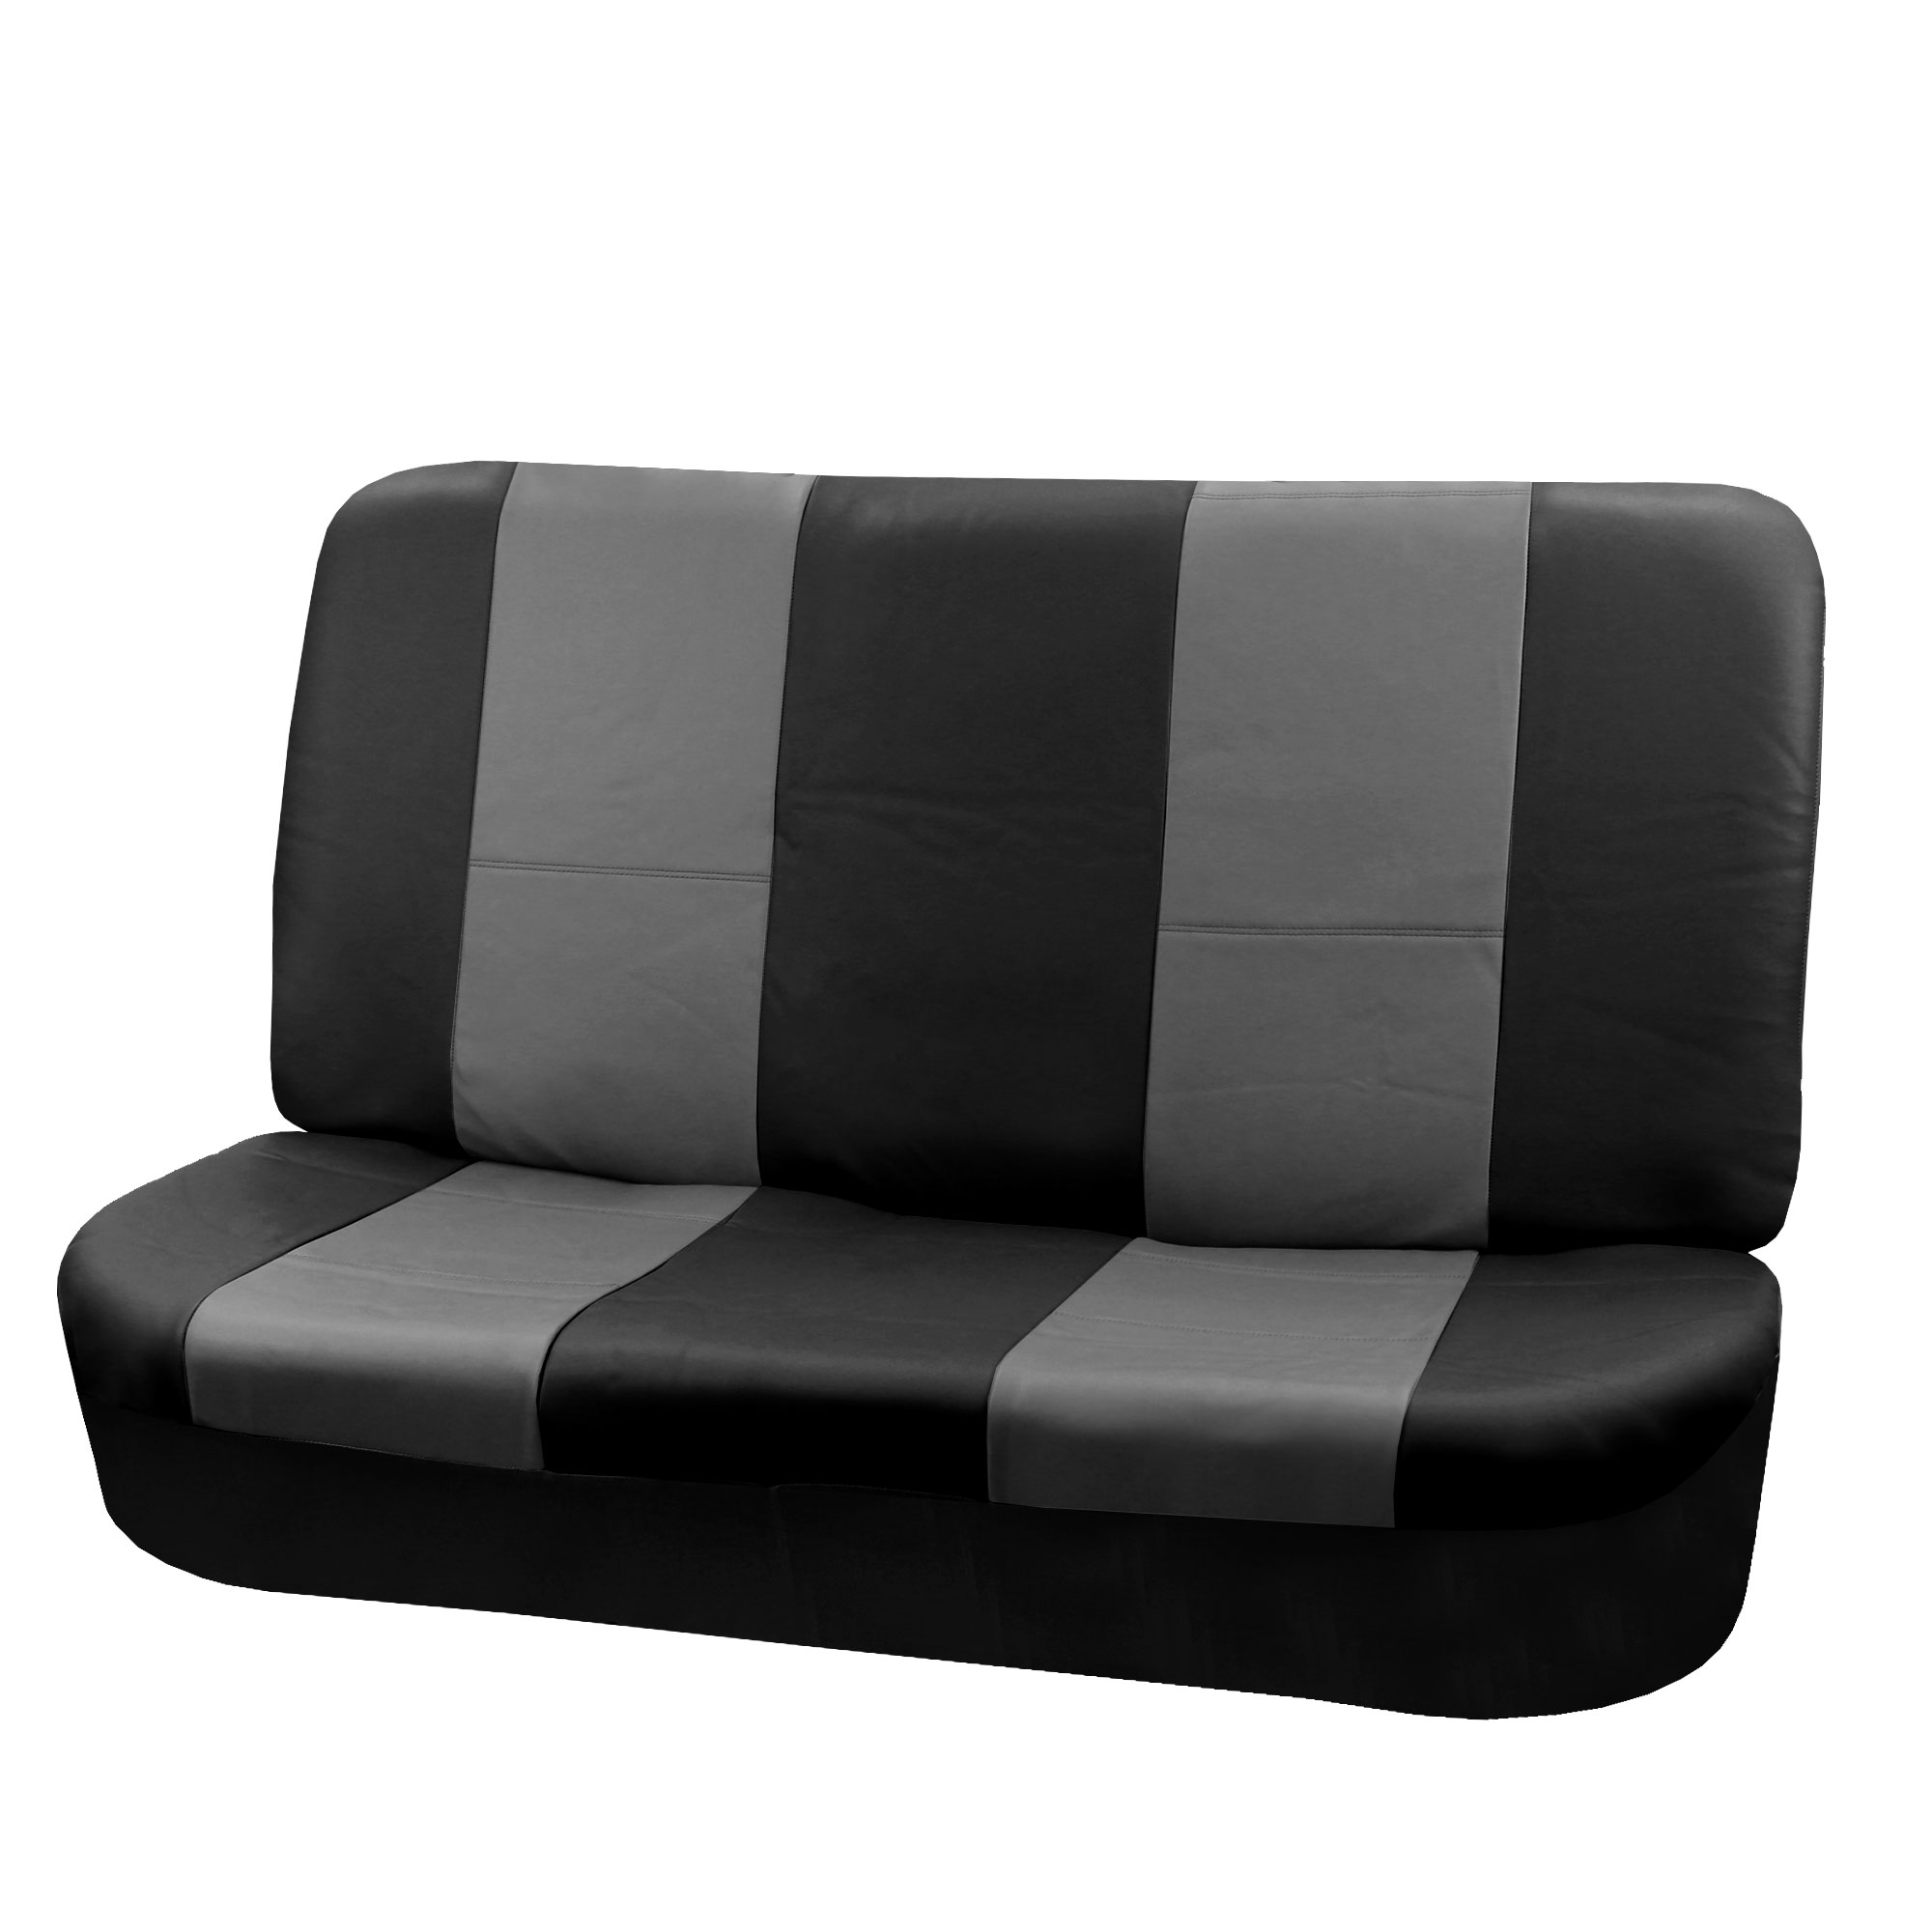 Leather Auto Vehicle Seat Covers With Floor Mats Combo